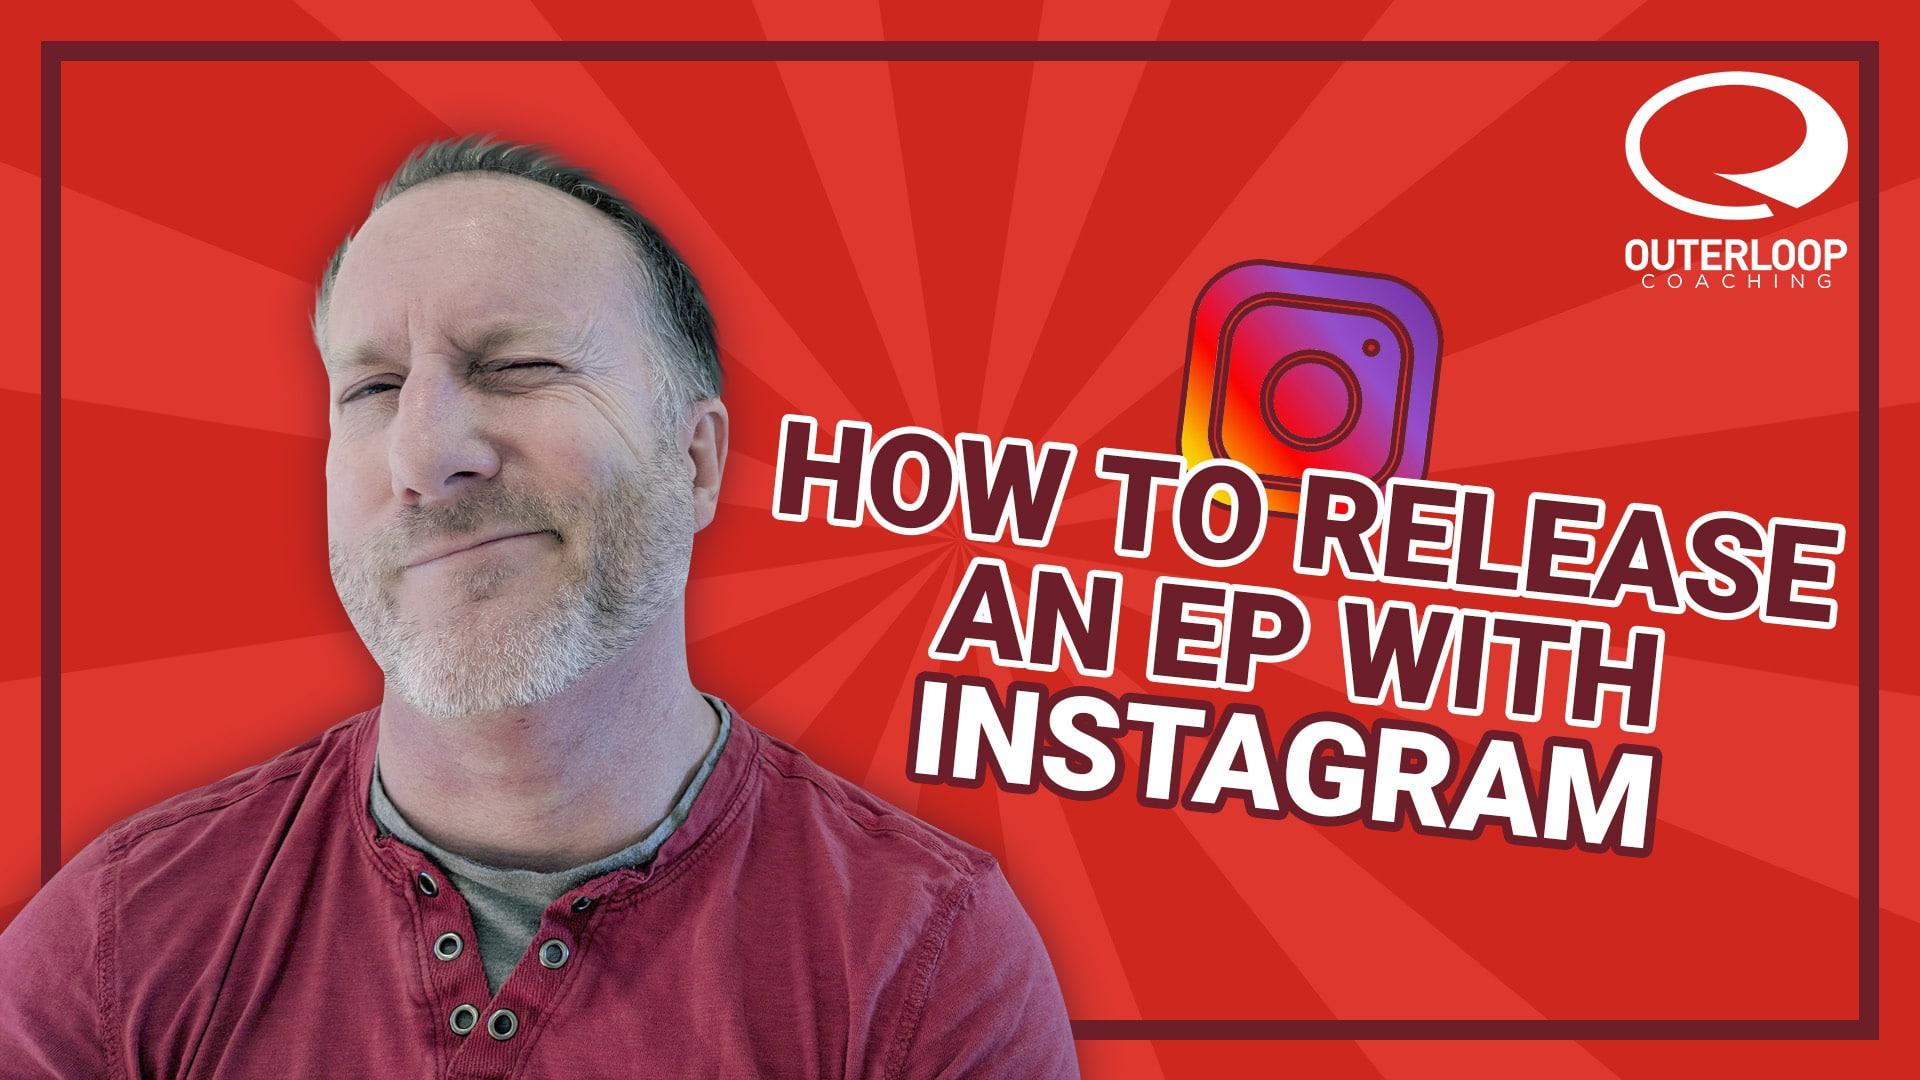 How to Release an EP with Instagram